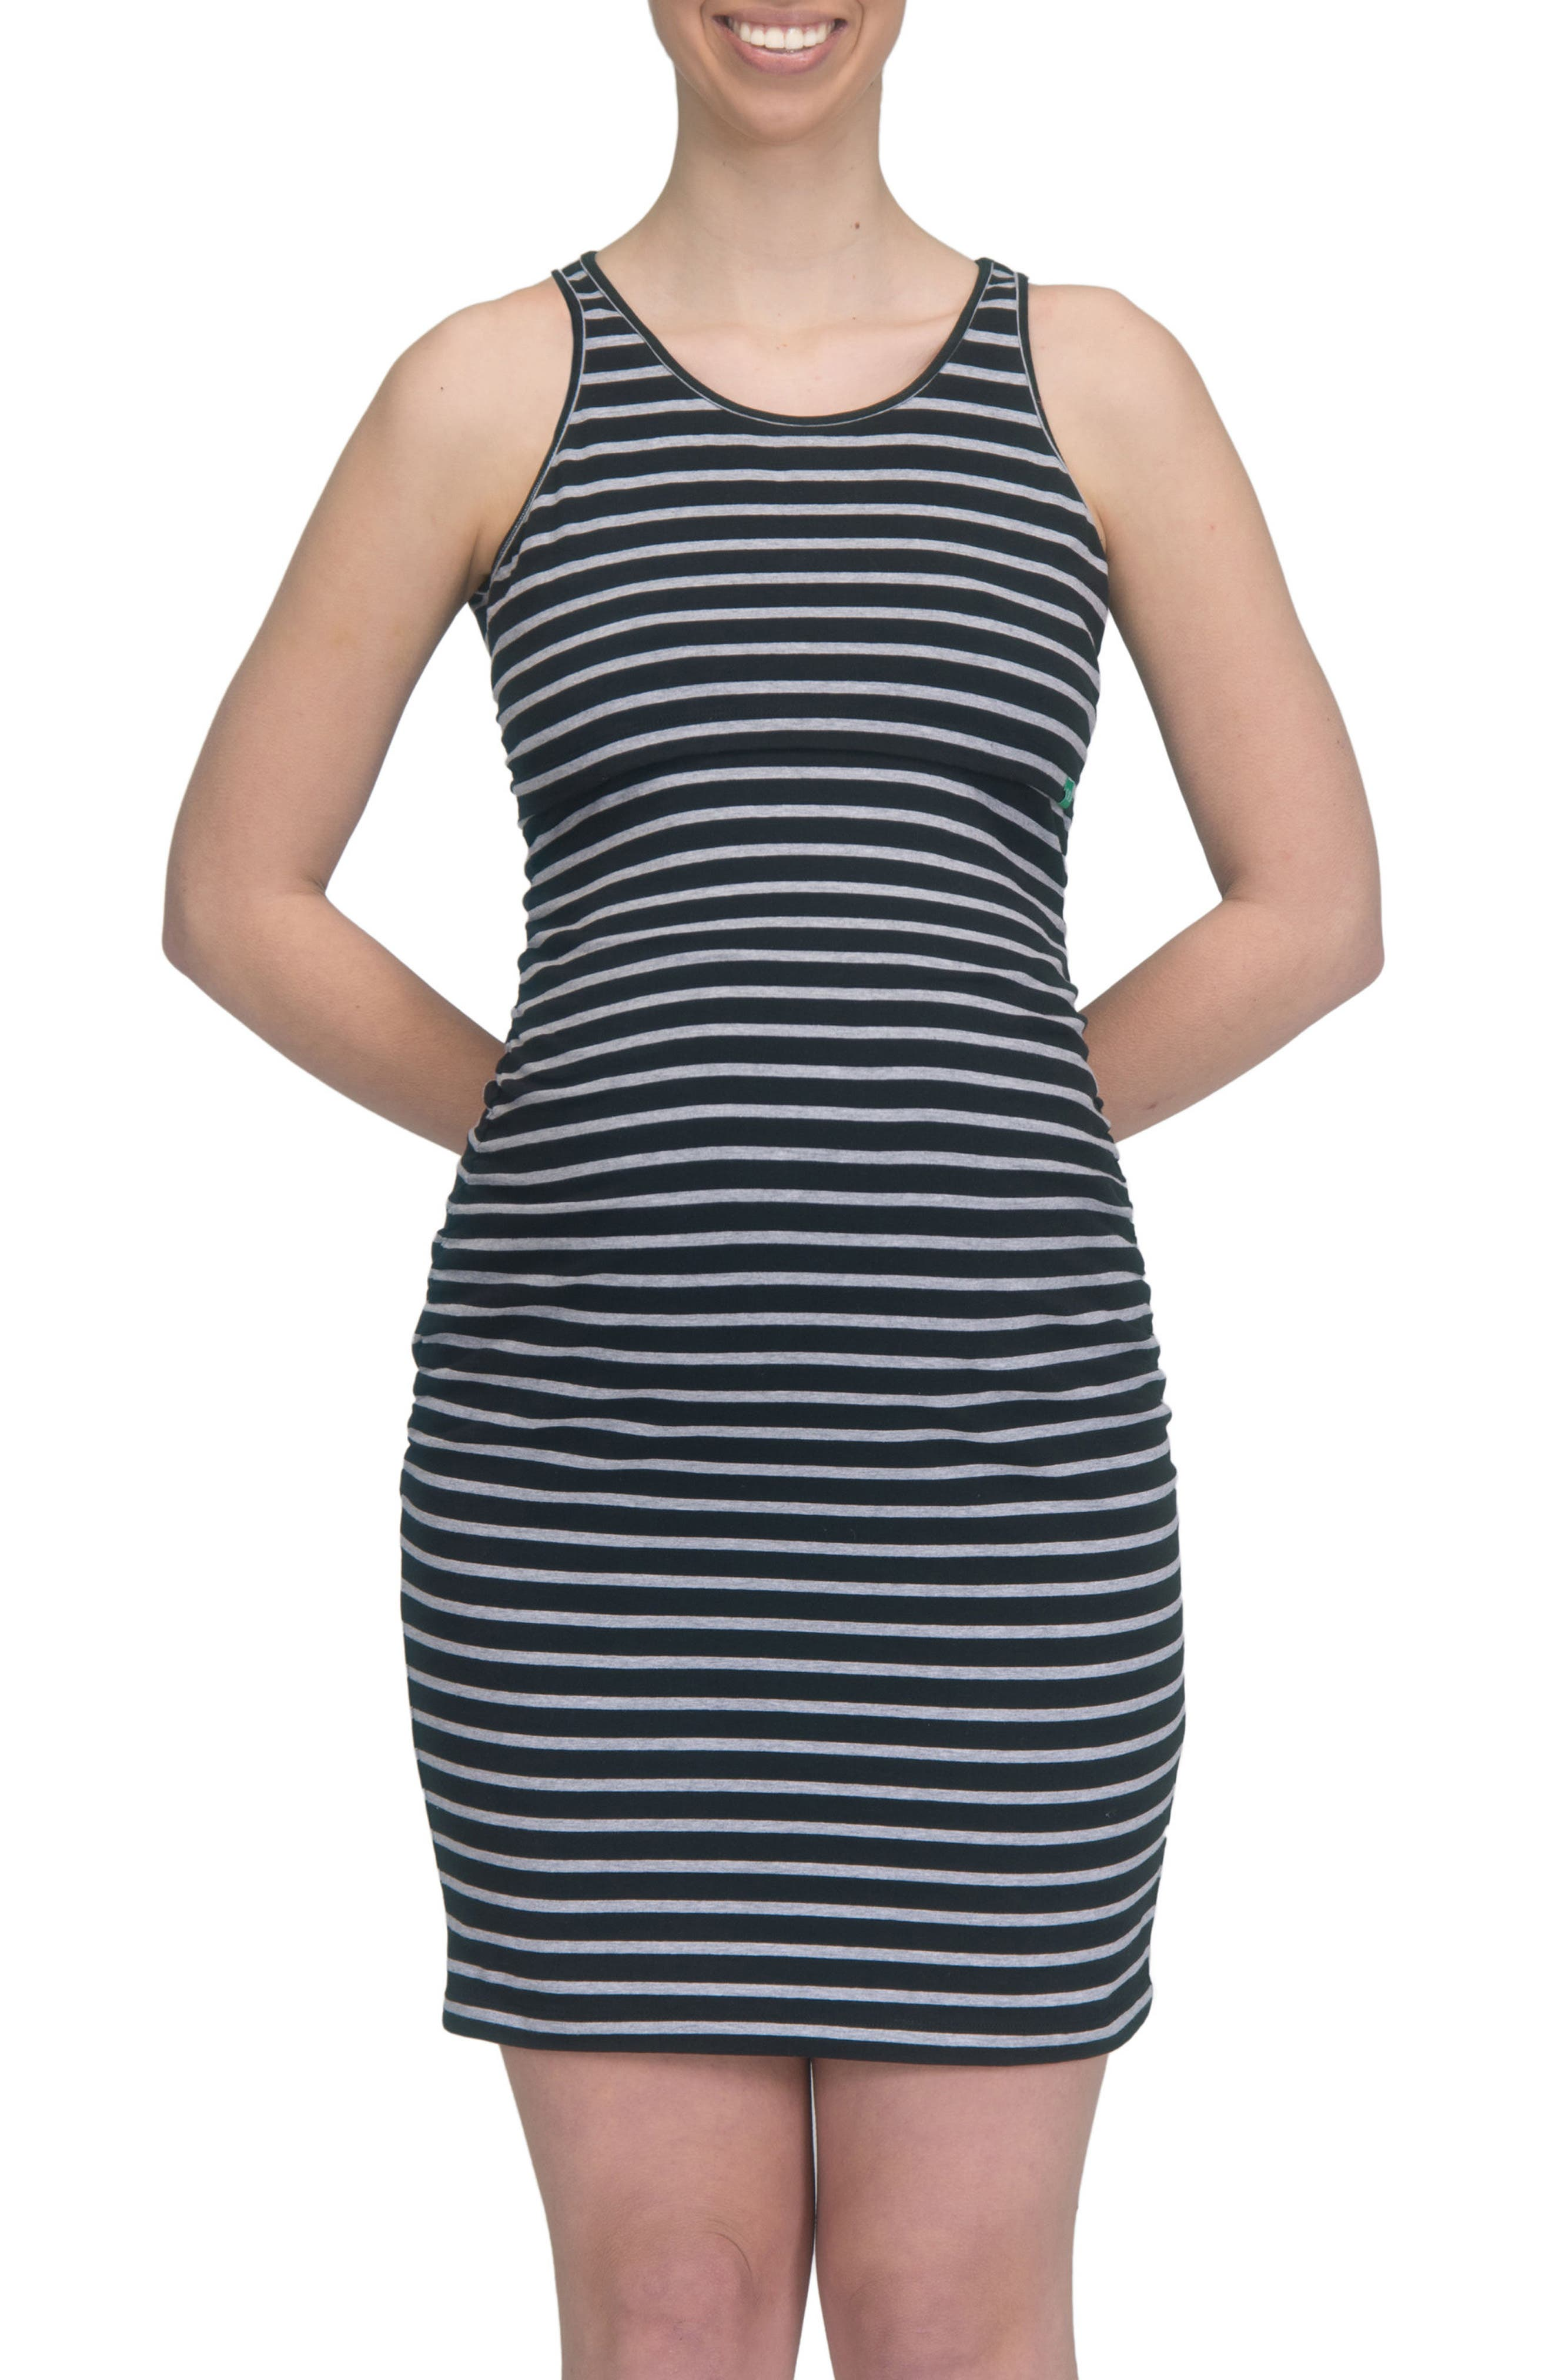 Maternity/Nursing Tank Dress,                         Main,                         color, BLACK/ GREY